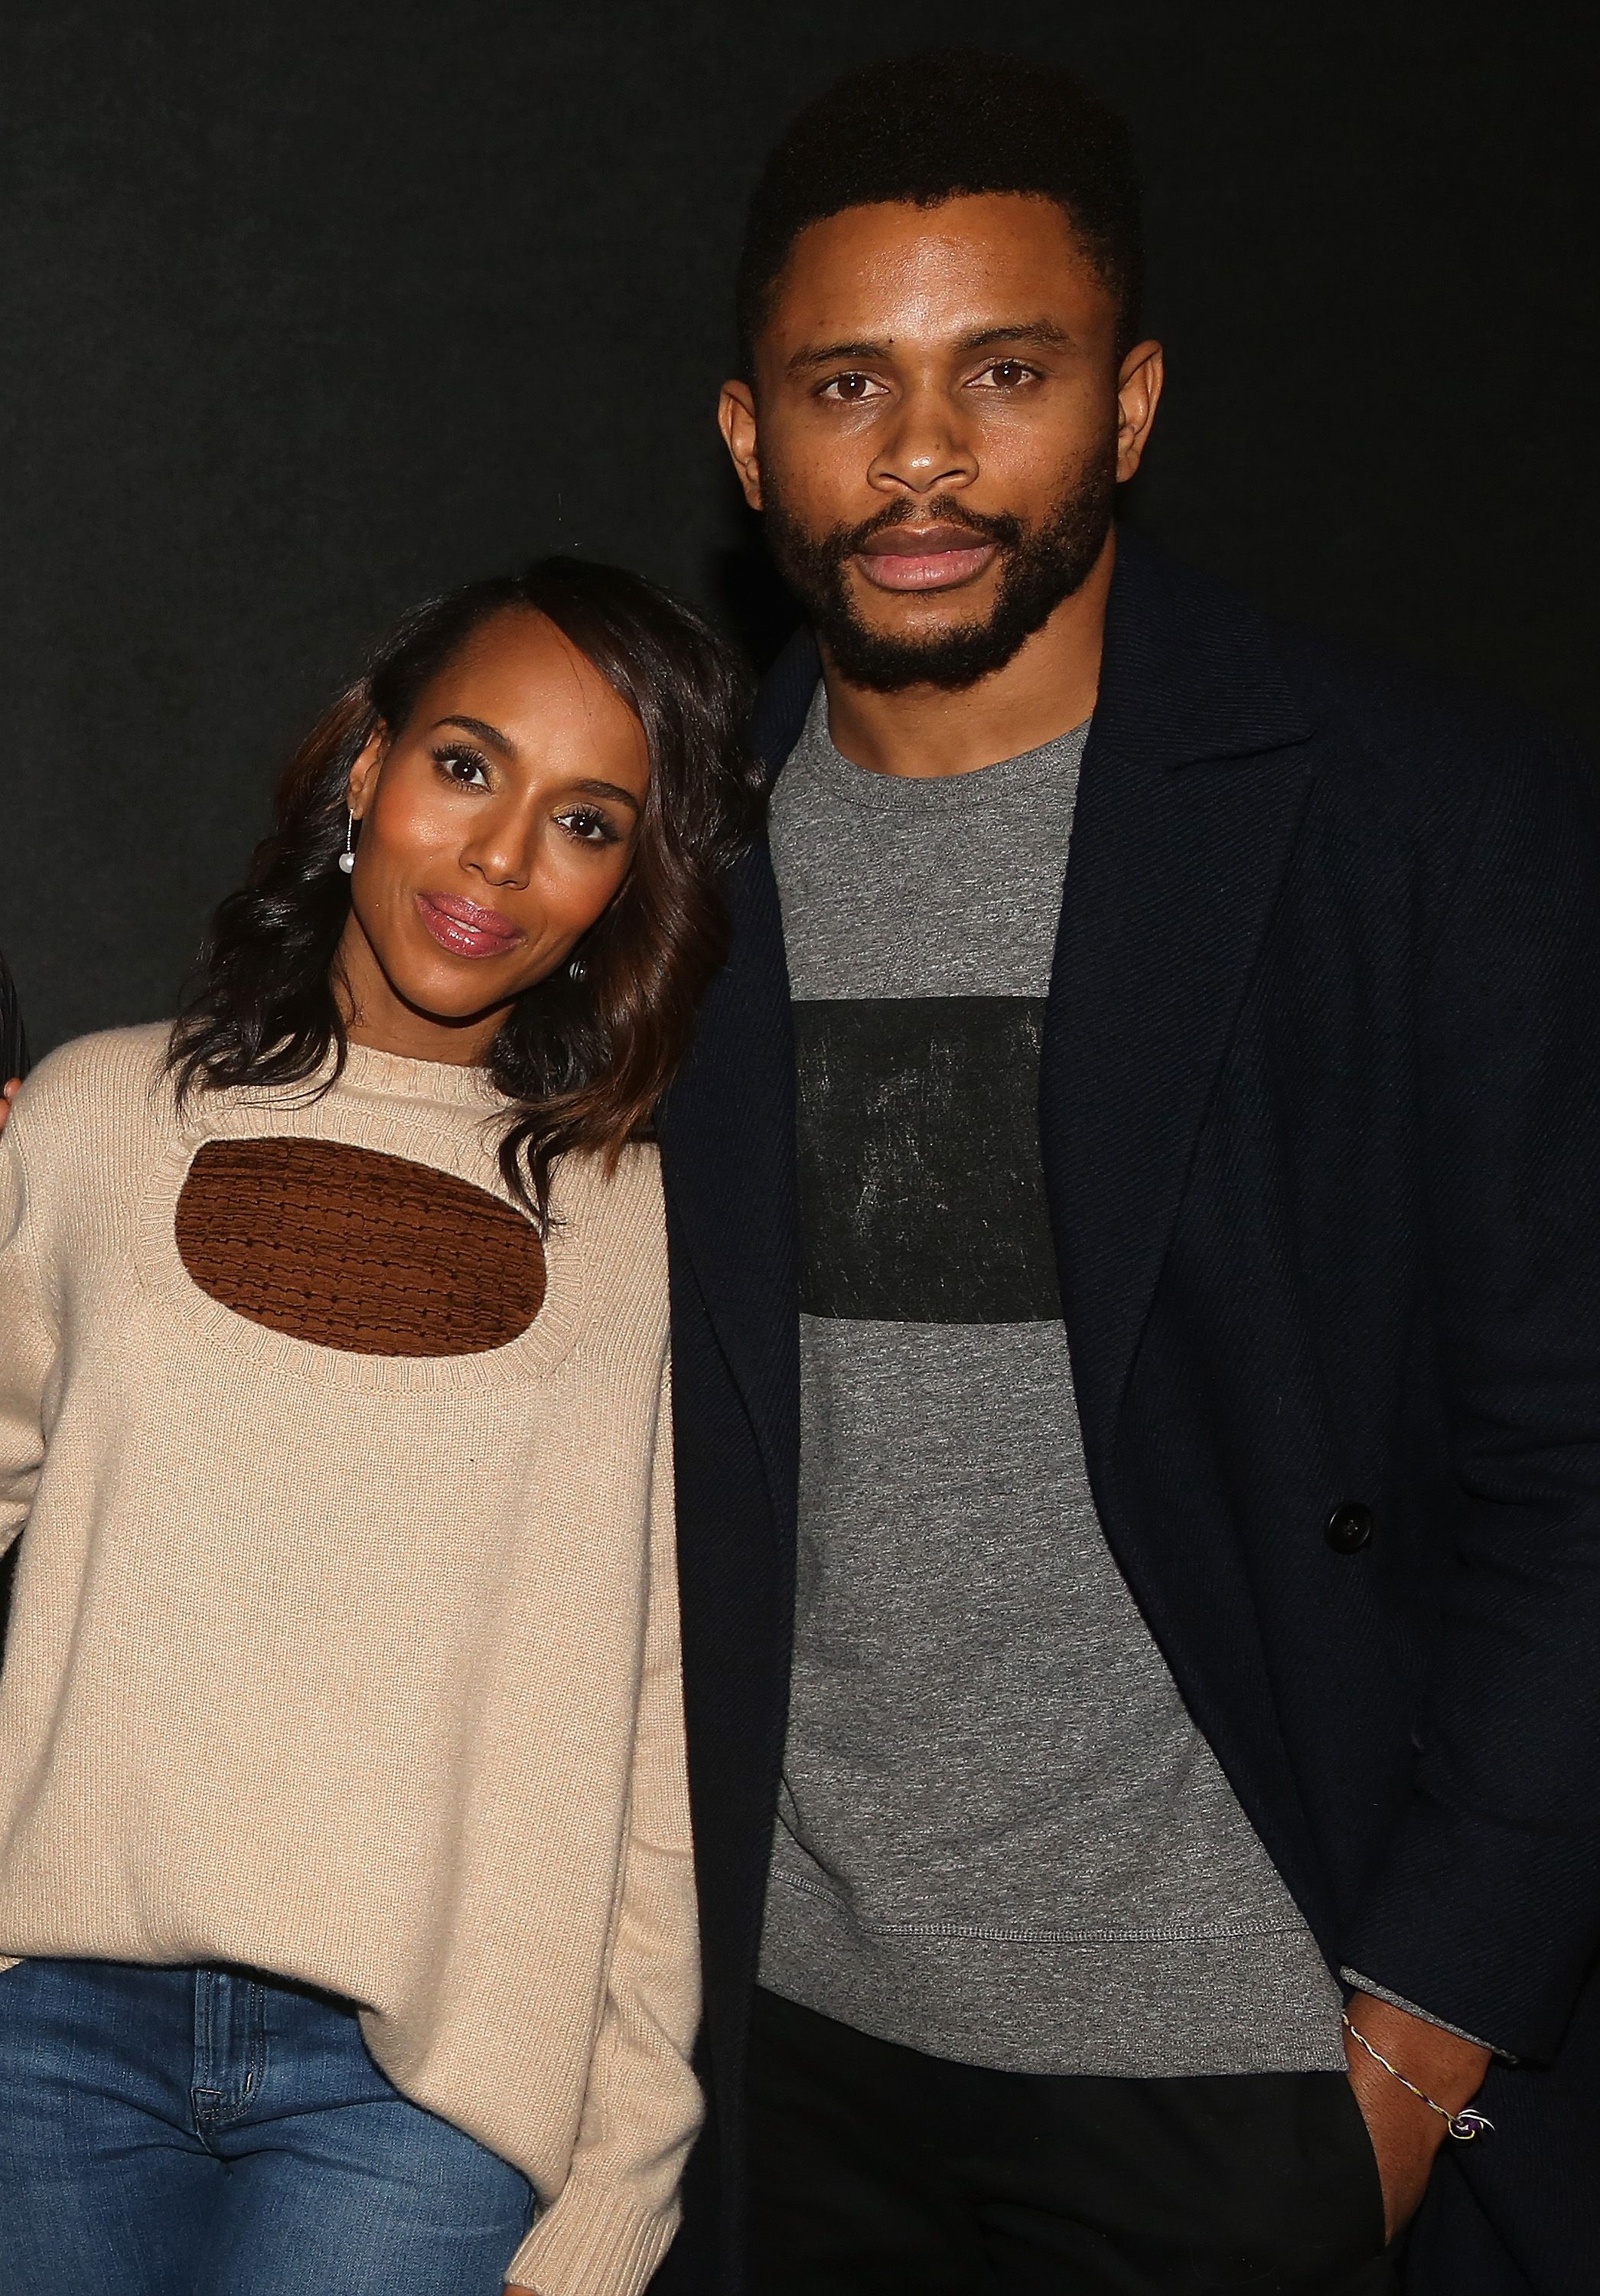 """Kerry Washington and Nnamdi Asomugha at a screening of """"If Beale Street Could Talk"""" on November 26, 2018 